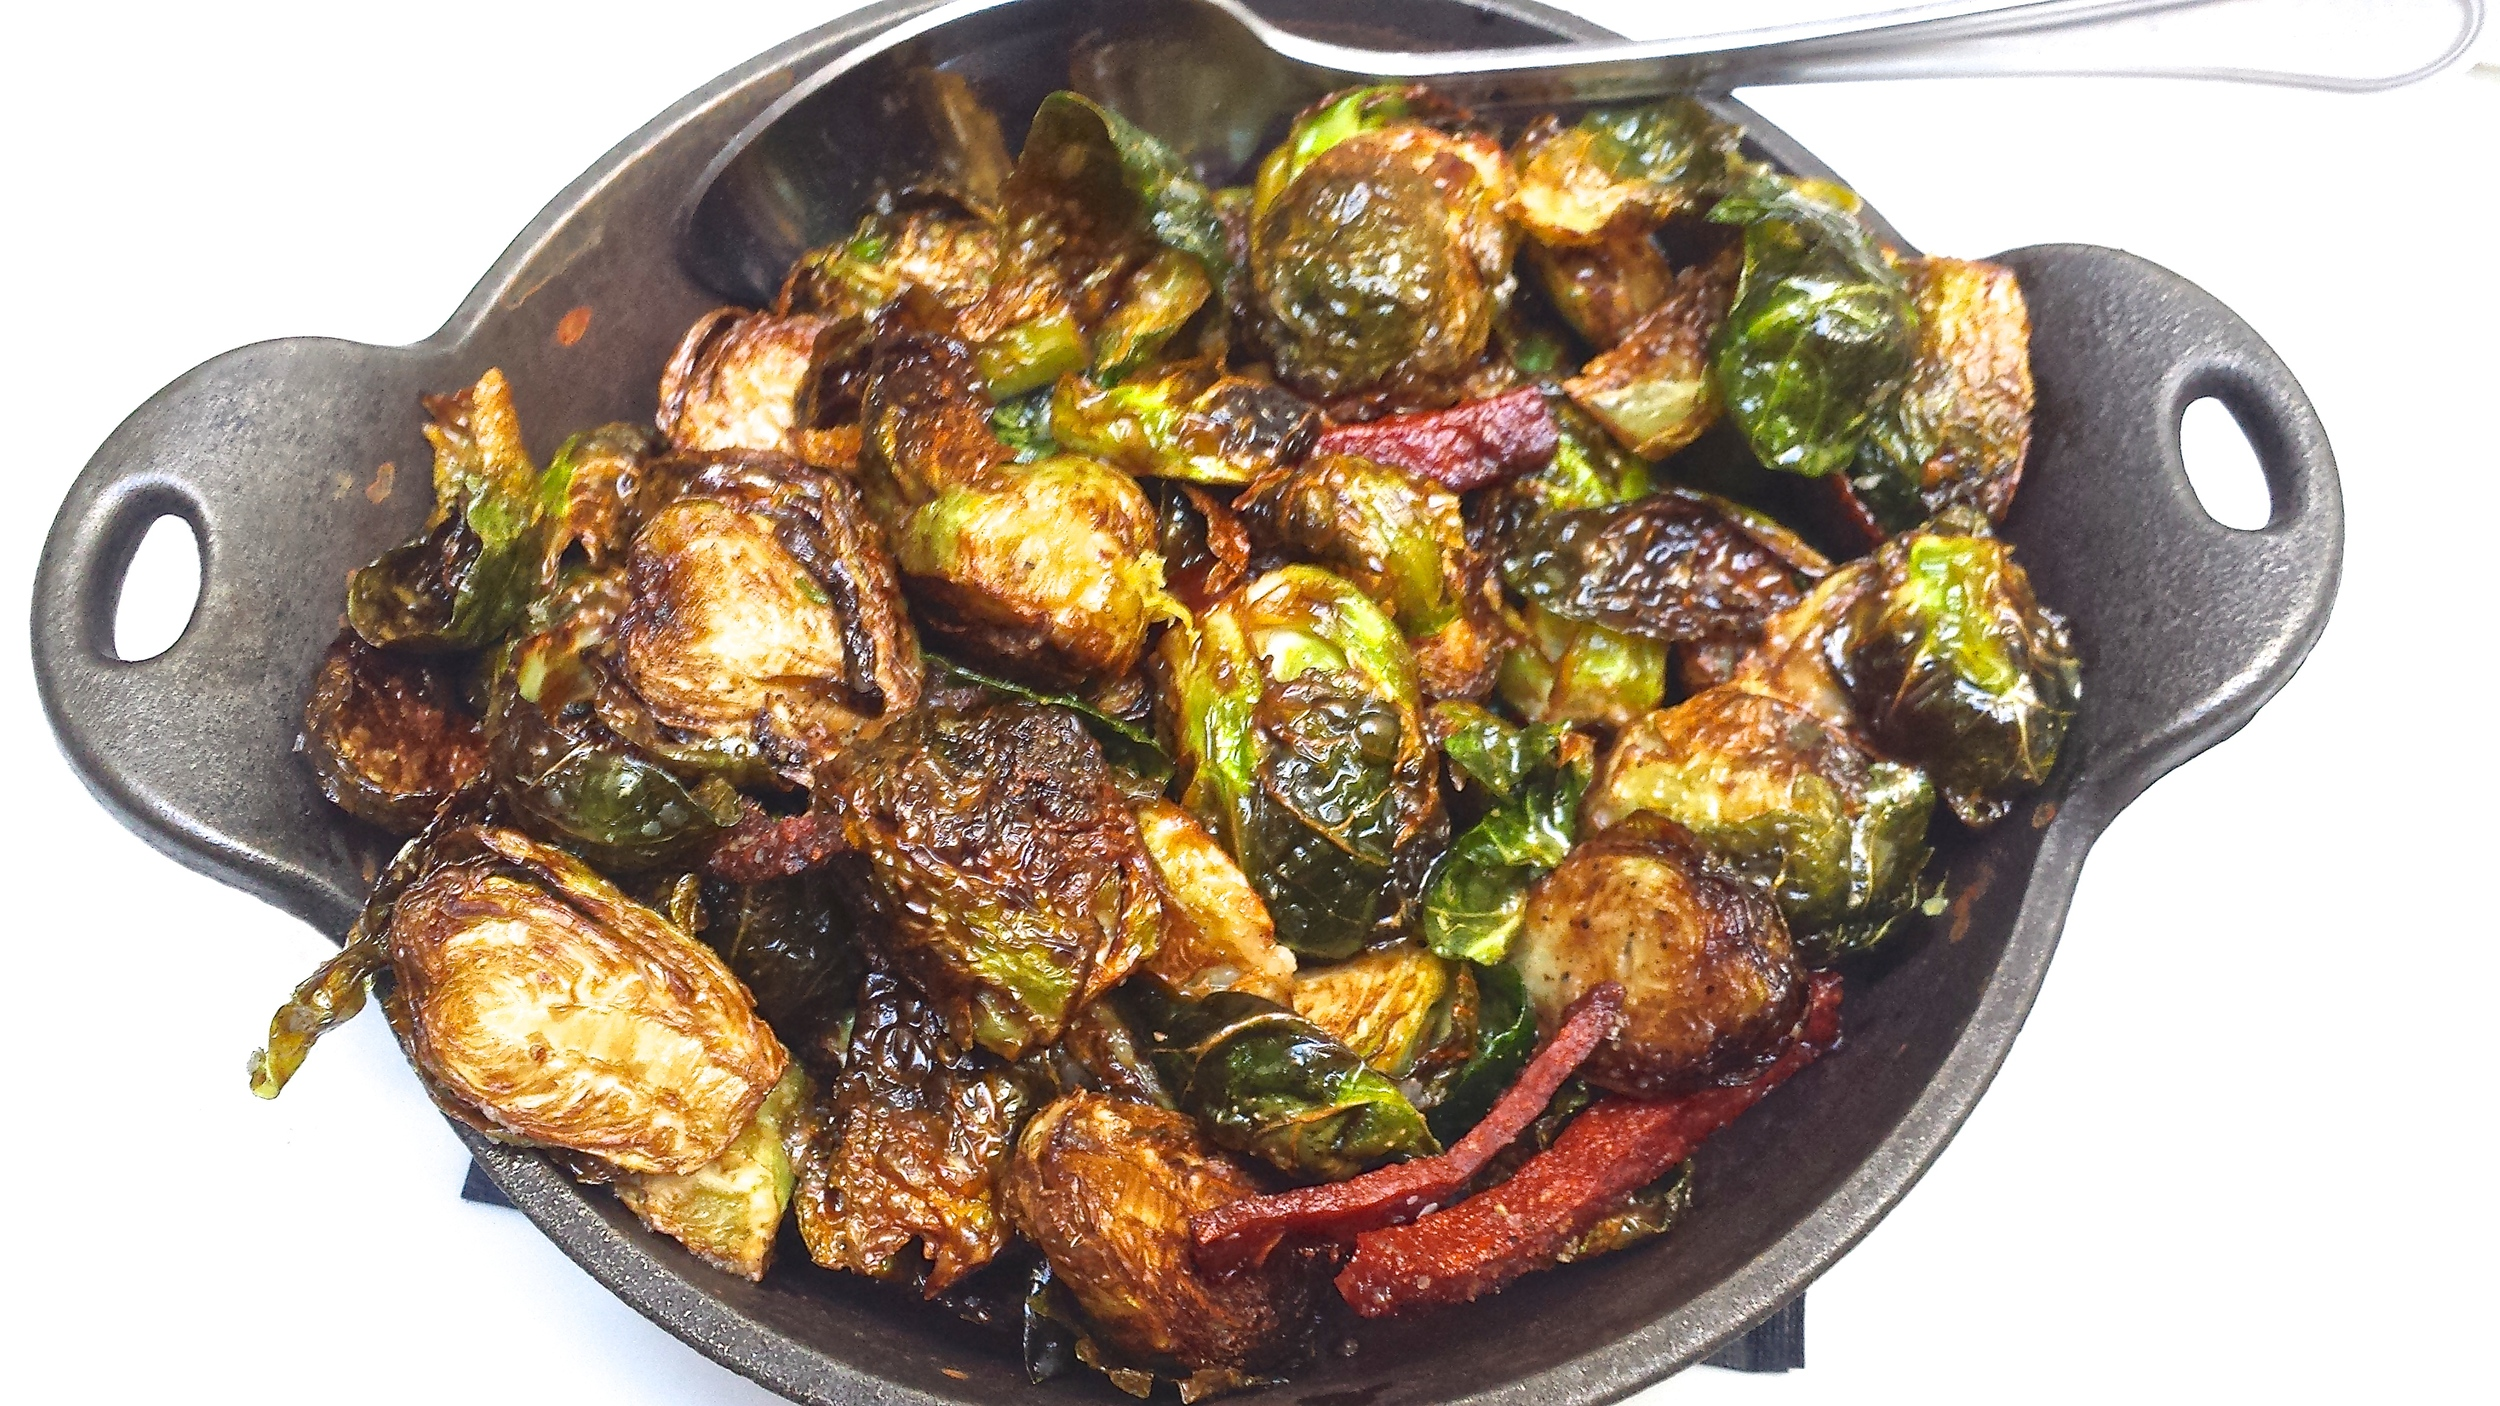 Wood and Vine brussels sprouts